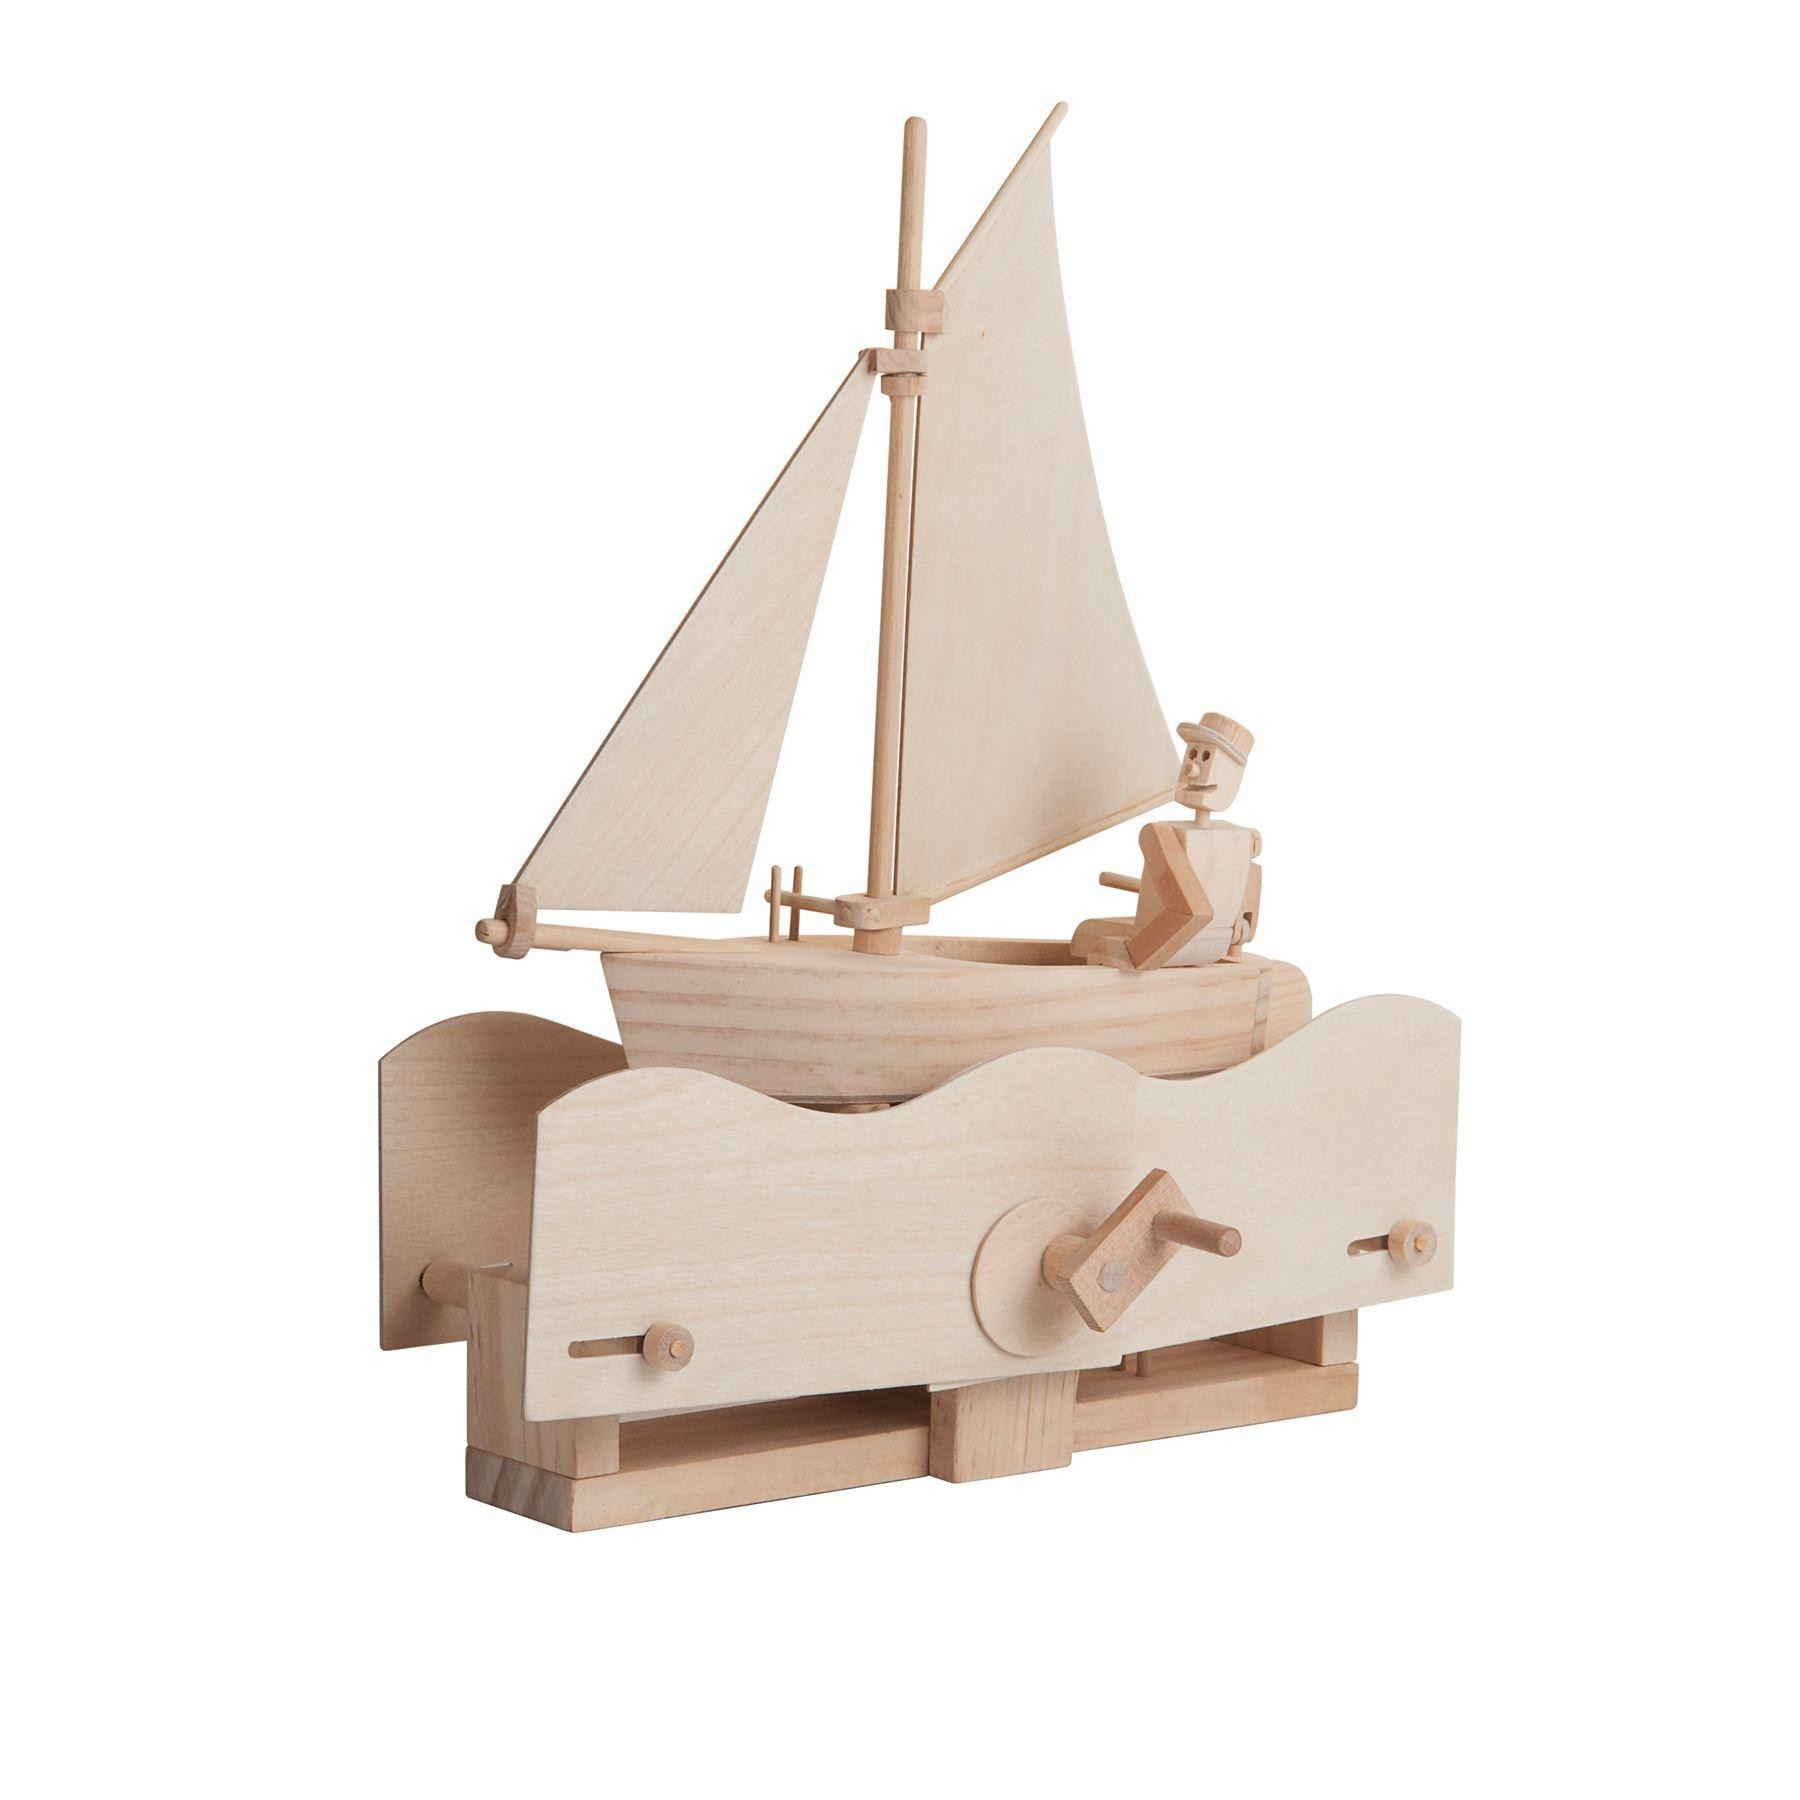 Timberkits Salty Sailor wooden kit